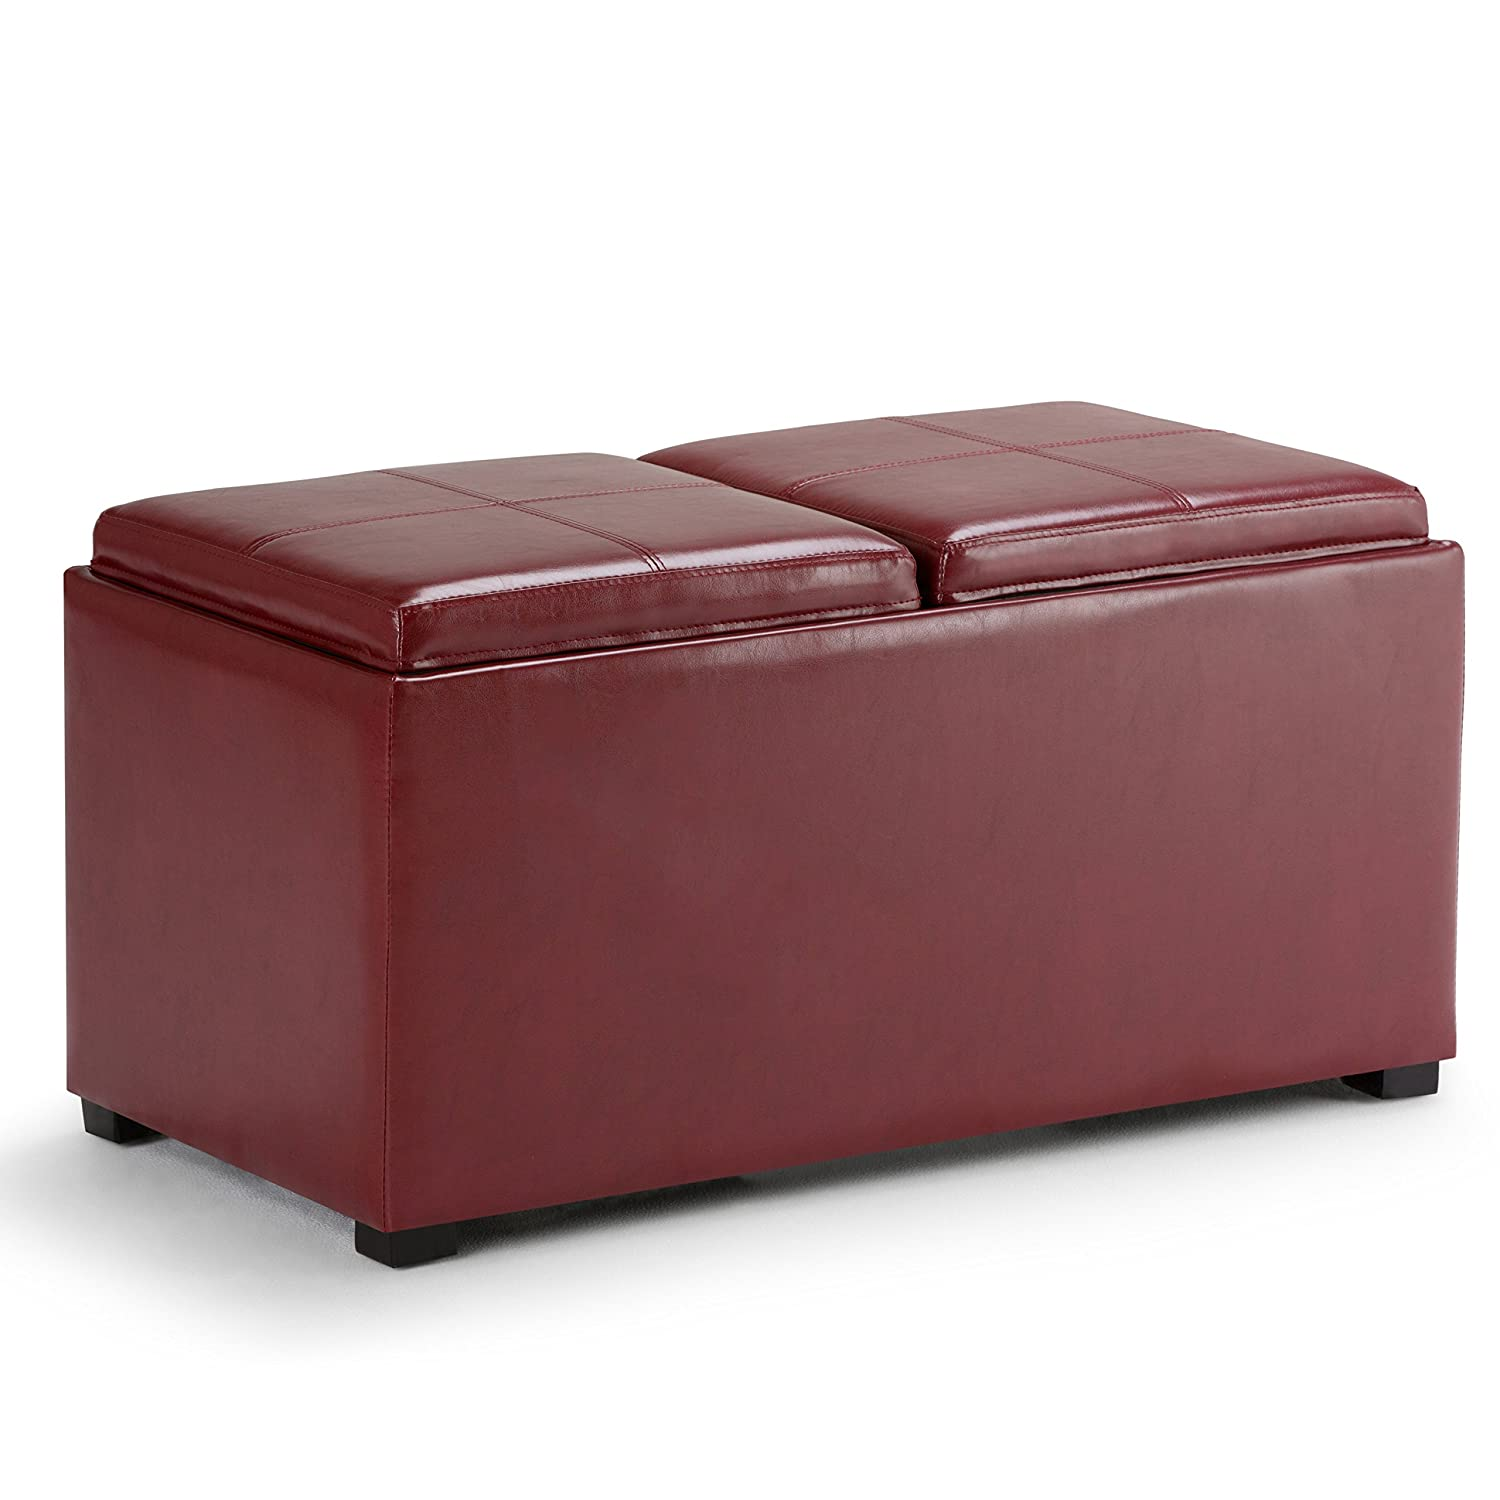 Simpli Home Avalon 3-Piece Rectangular Storage Ottoman w/ 2 Serving Trays & 2 Small Ottomans, PU Leather, Brown CCT Global Sourcing F-15B